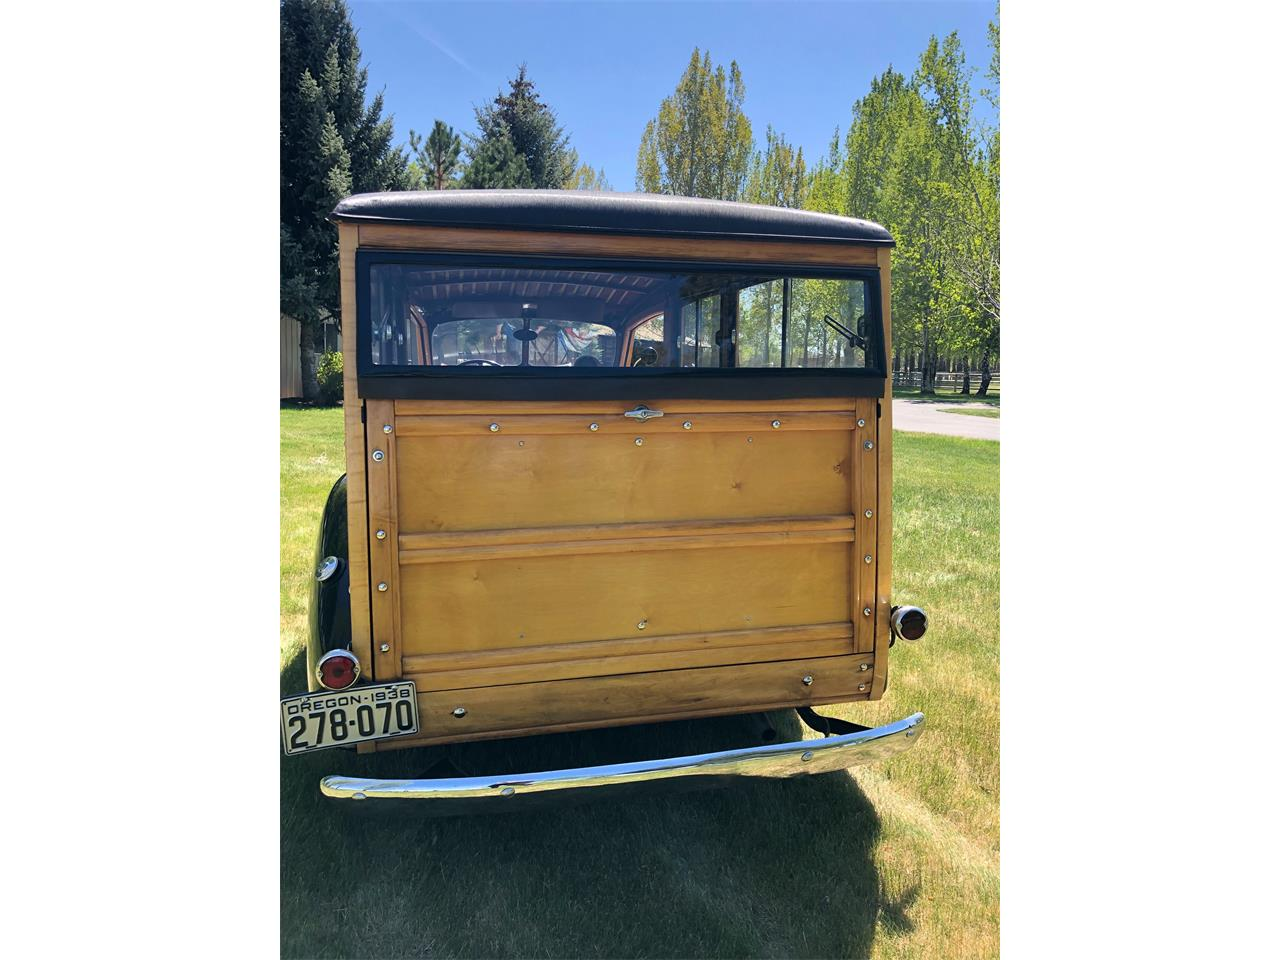 1938 Ford Wagon for sale in Bend, OR – photo 6